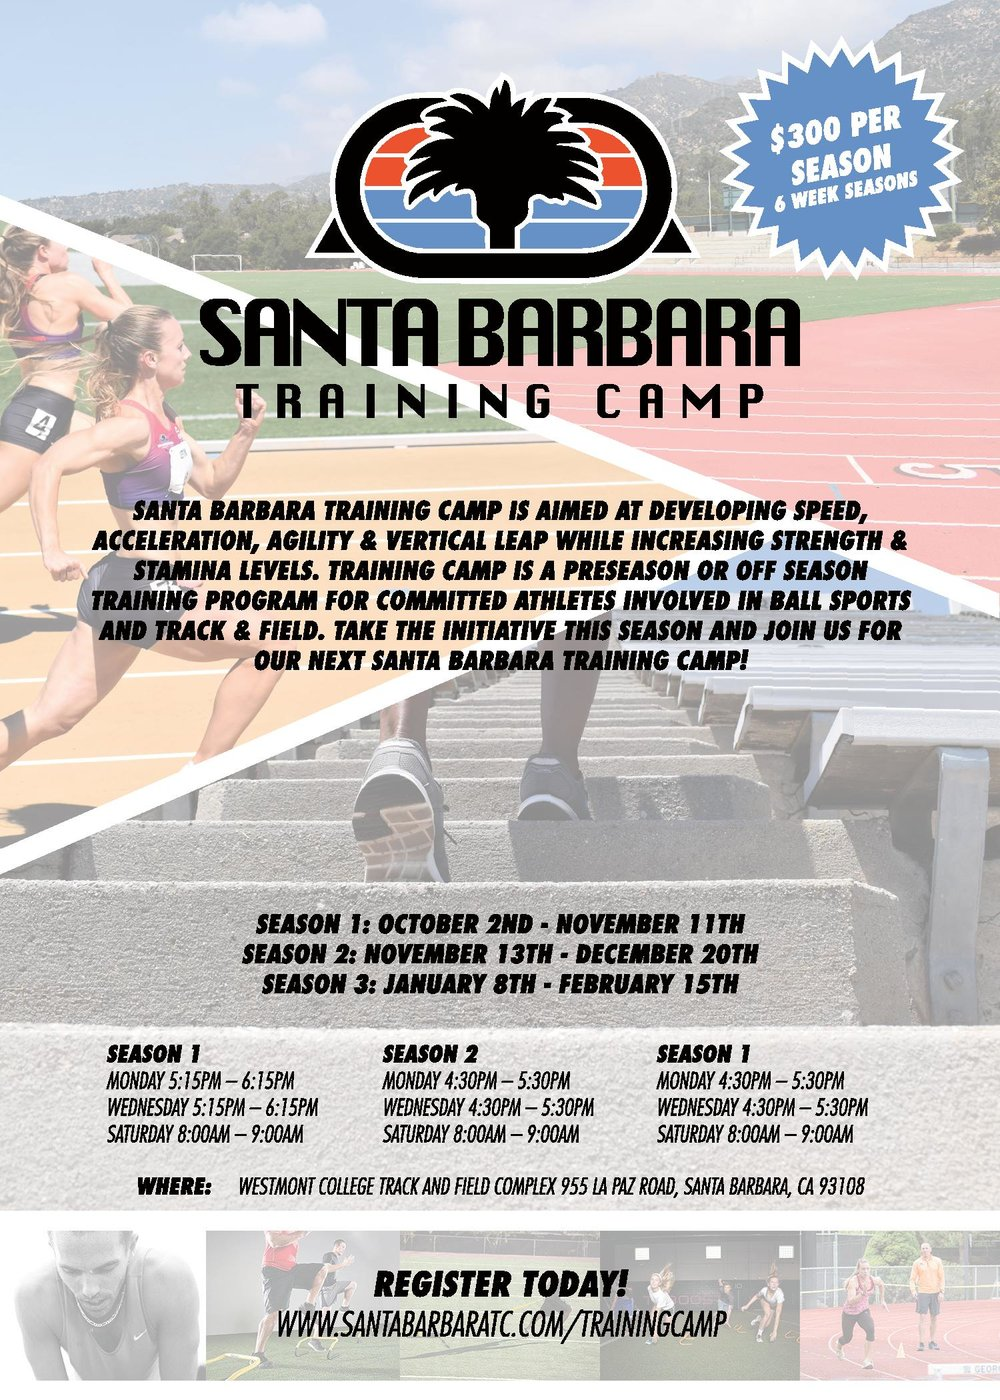 Santa-Barbara-Training-Camp-5x7-for-print-page-001.jpg